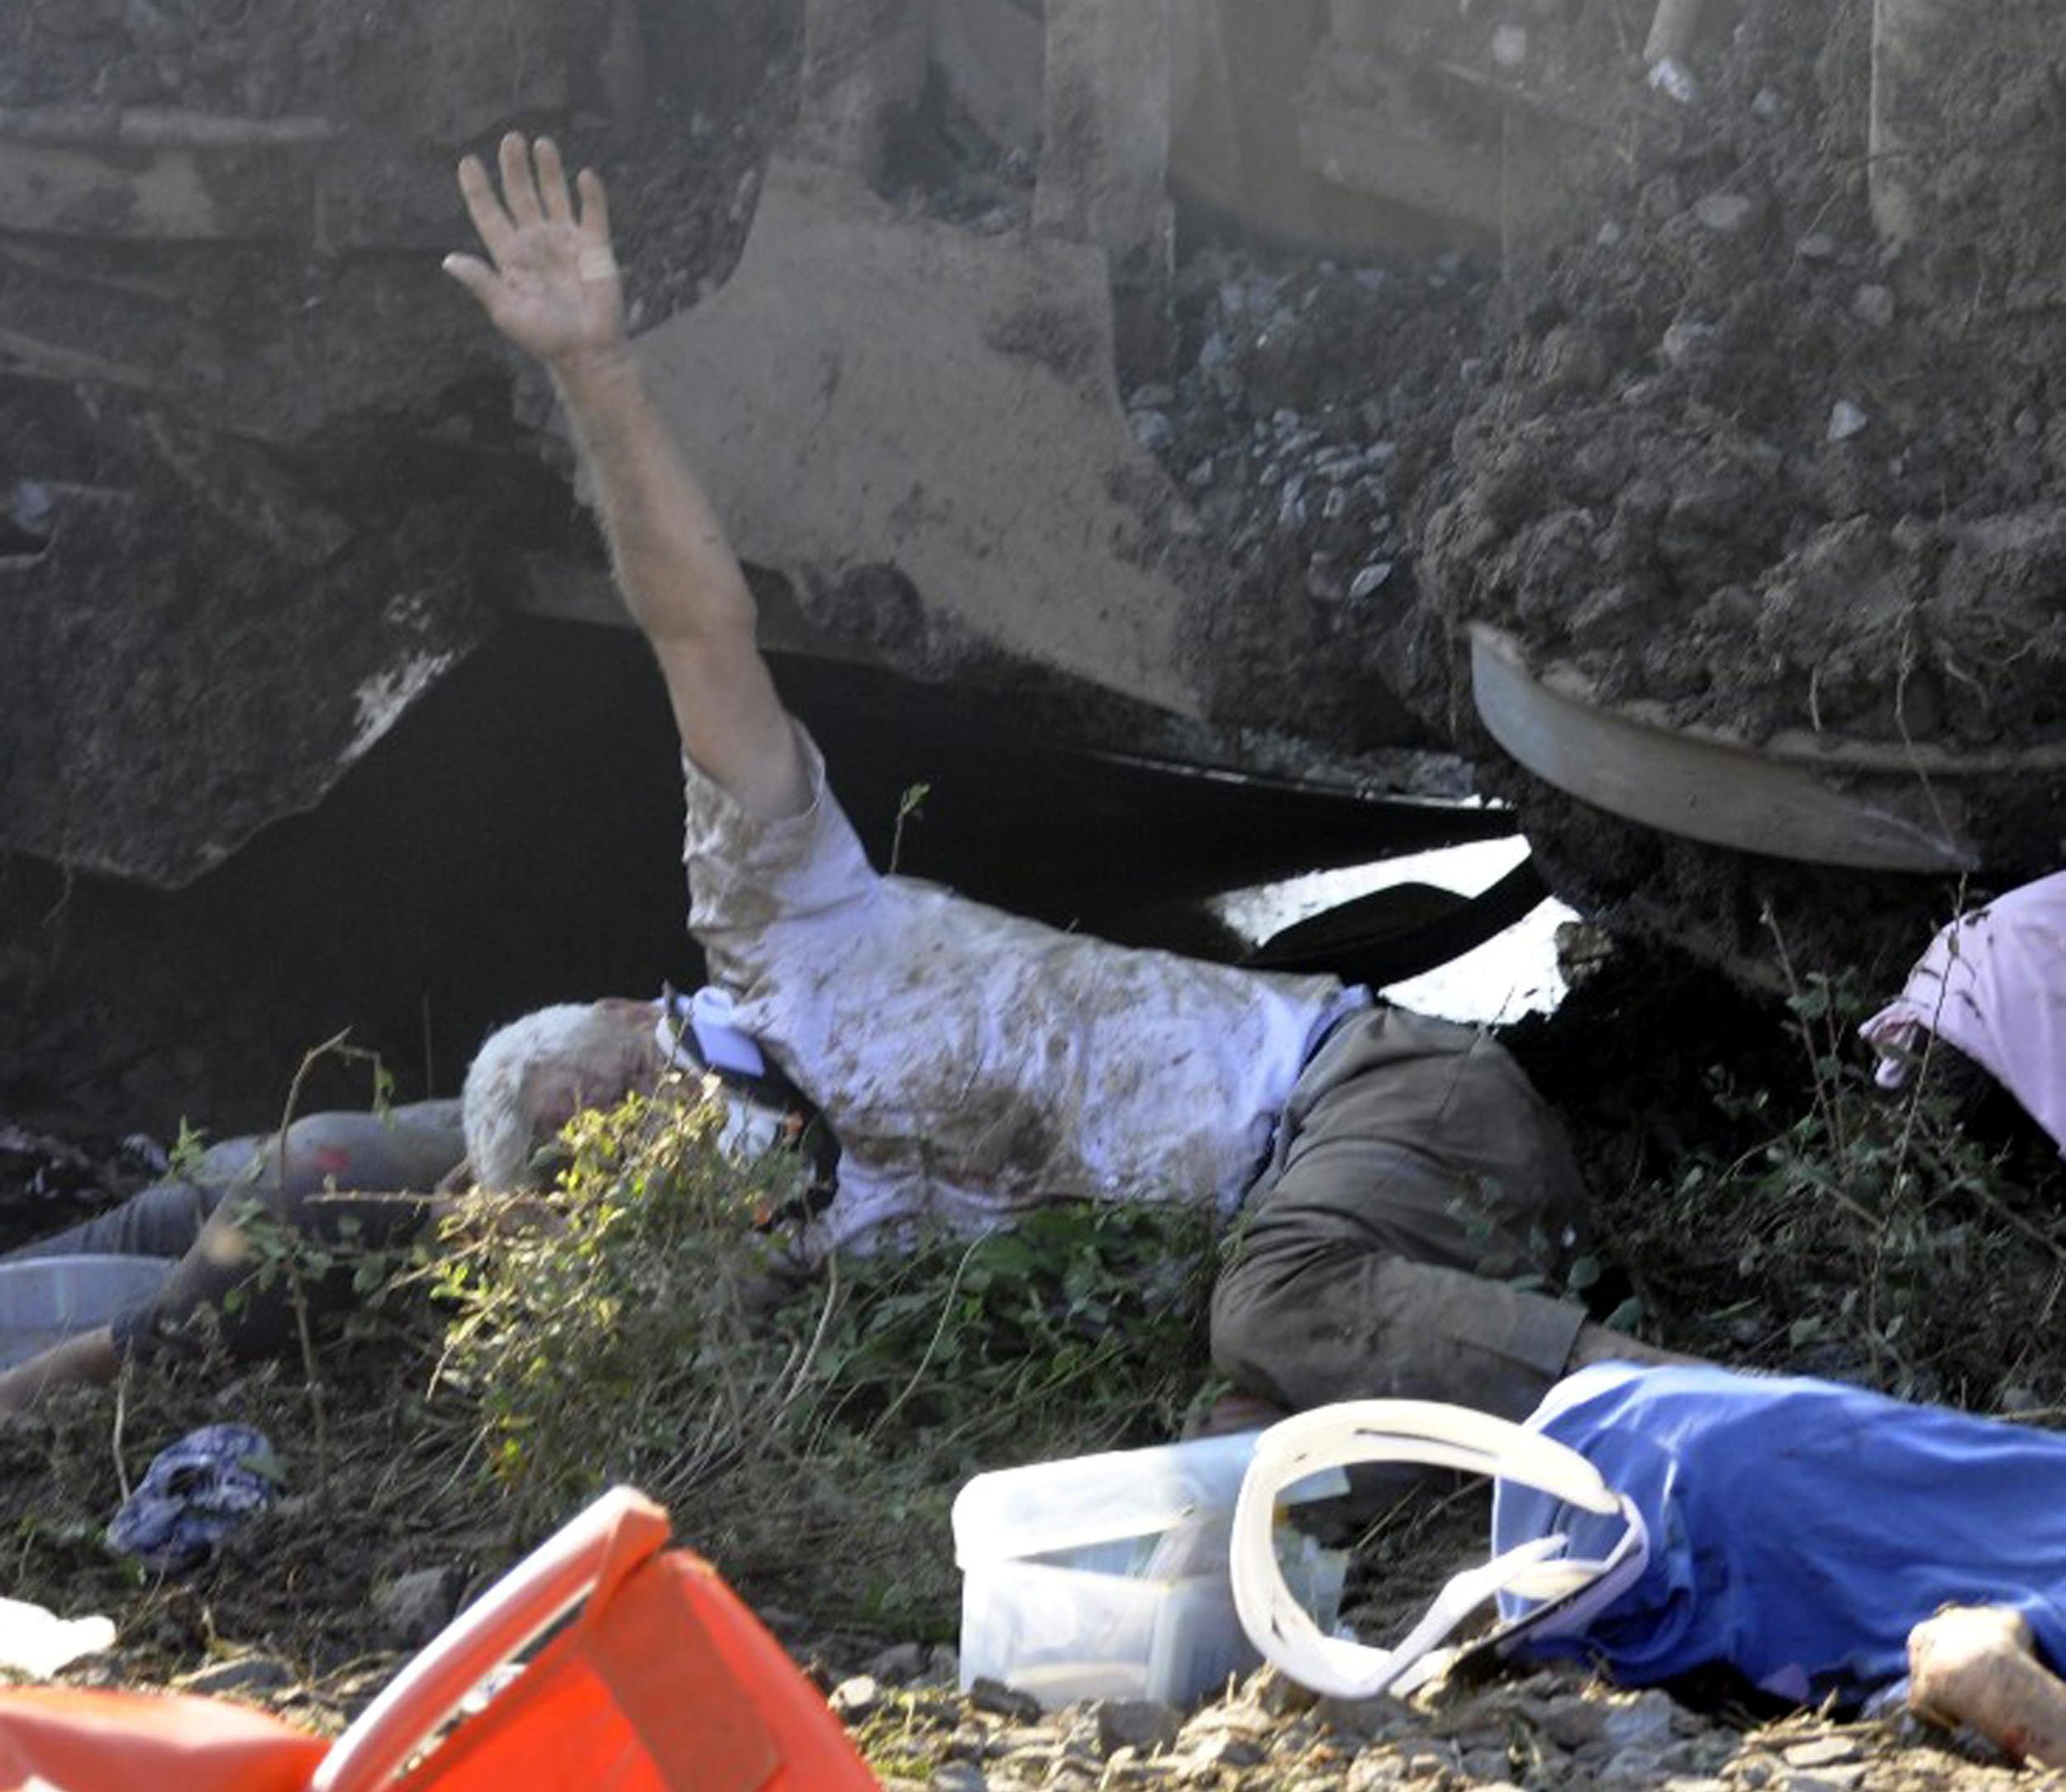 ABACA Press via Press Association Images. GRAPHIC CONTENT - Emergency services rescue victims from overturned train cars near a village in Tekirdag province, Turkey Sunday, July 8, 2018. At least 10 people were killed and more than 70 injured Sunday when multiple cars of a train derailed in western Turkey, a Turkish official said. Photo by Depo Photos/ABACAPRESS.COM